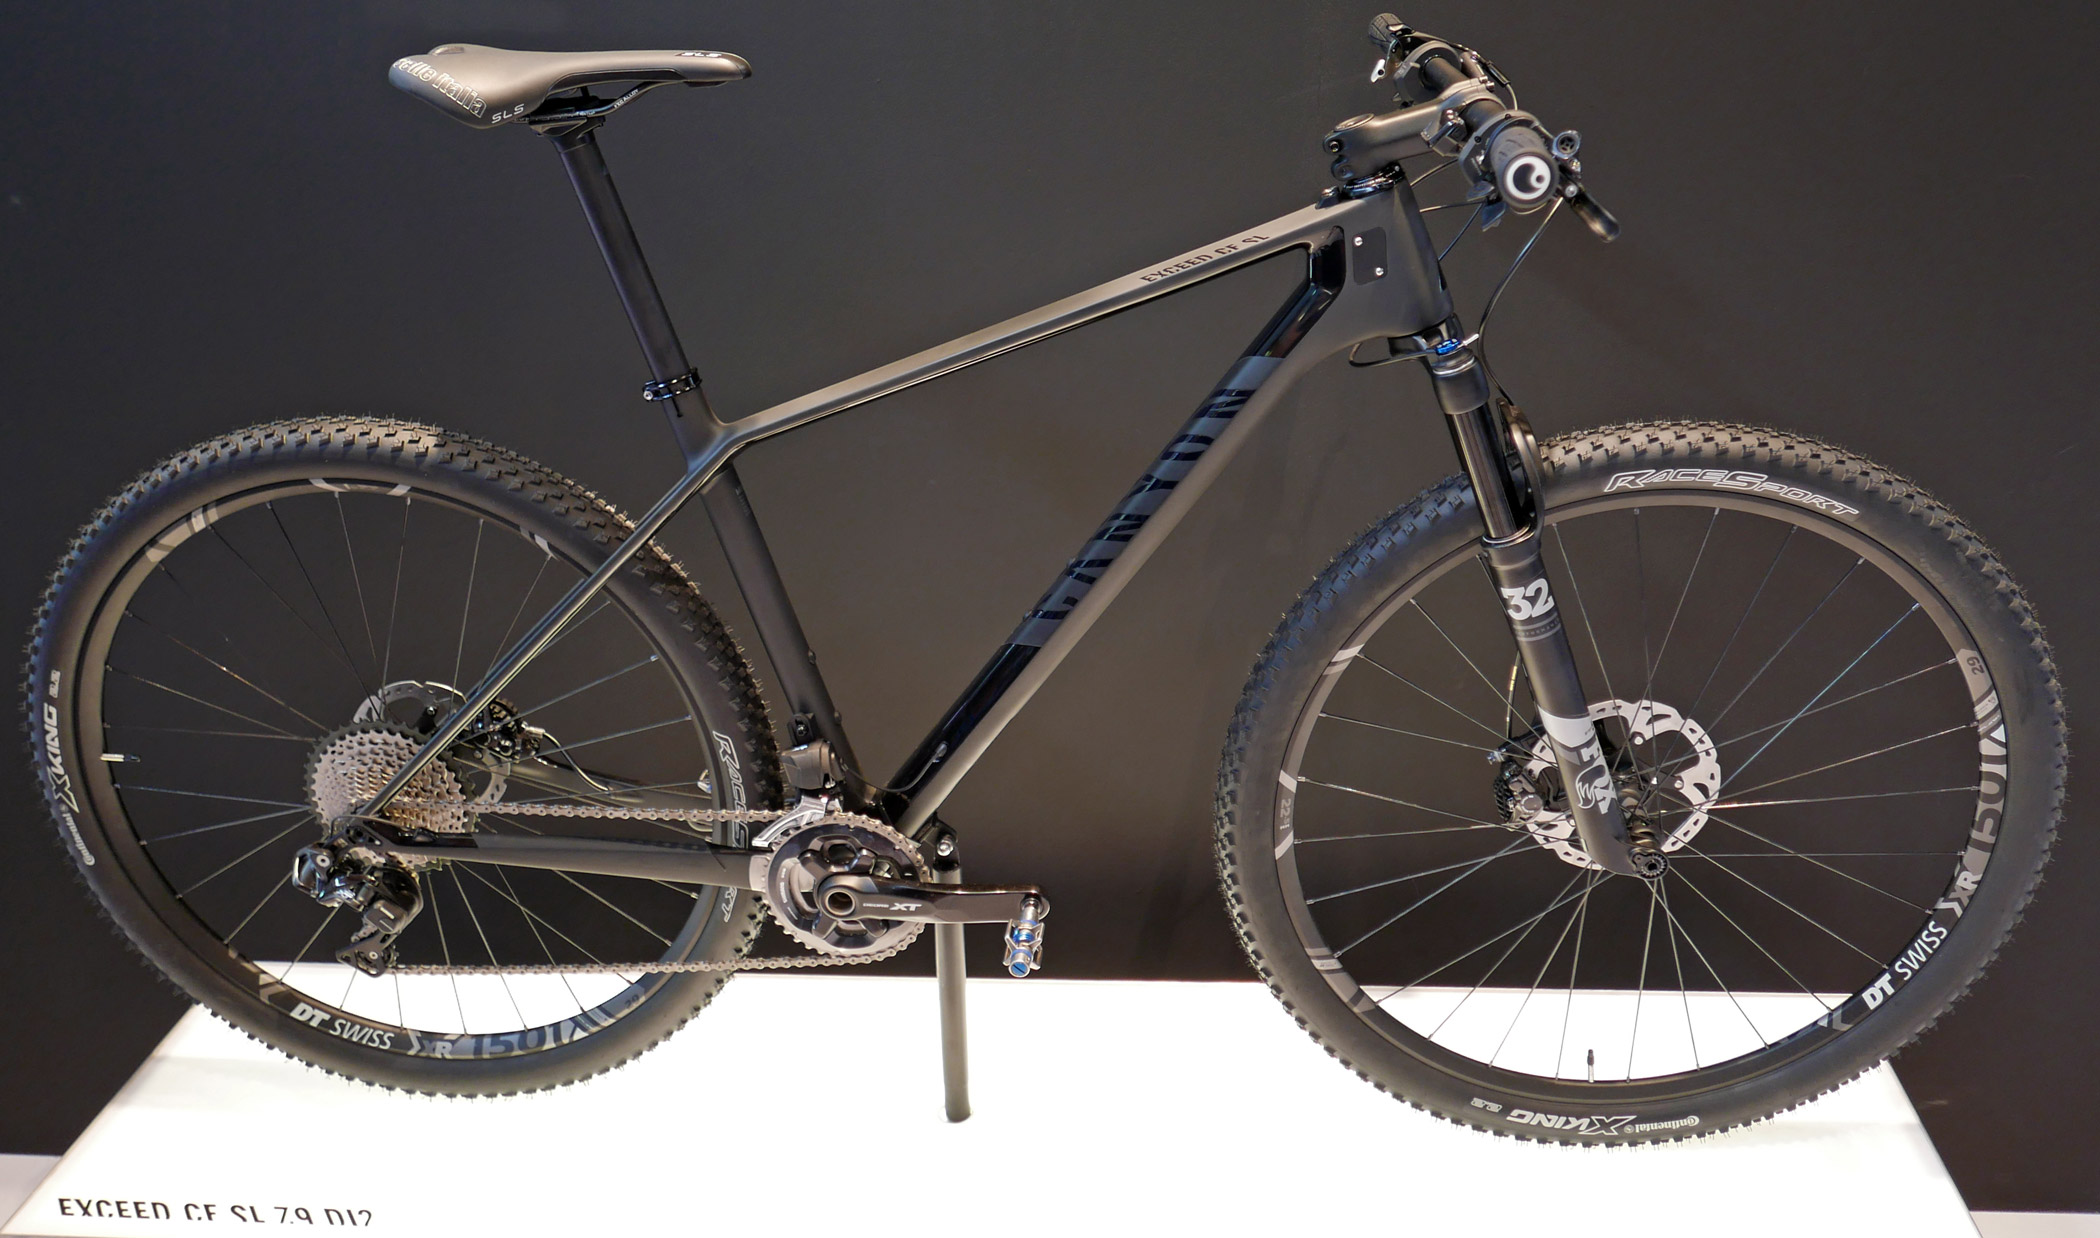 Eb16 Canyon Trickles Down Carbon Tech For New Speedmax